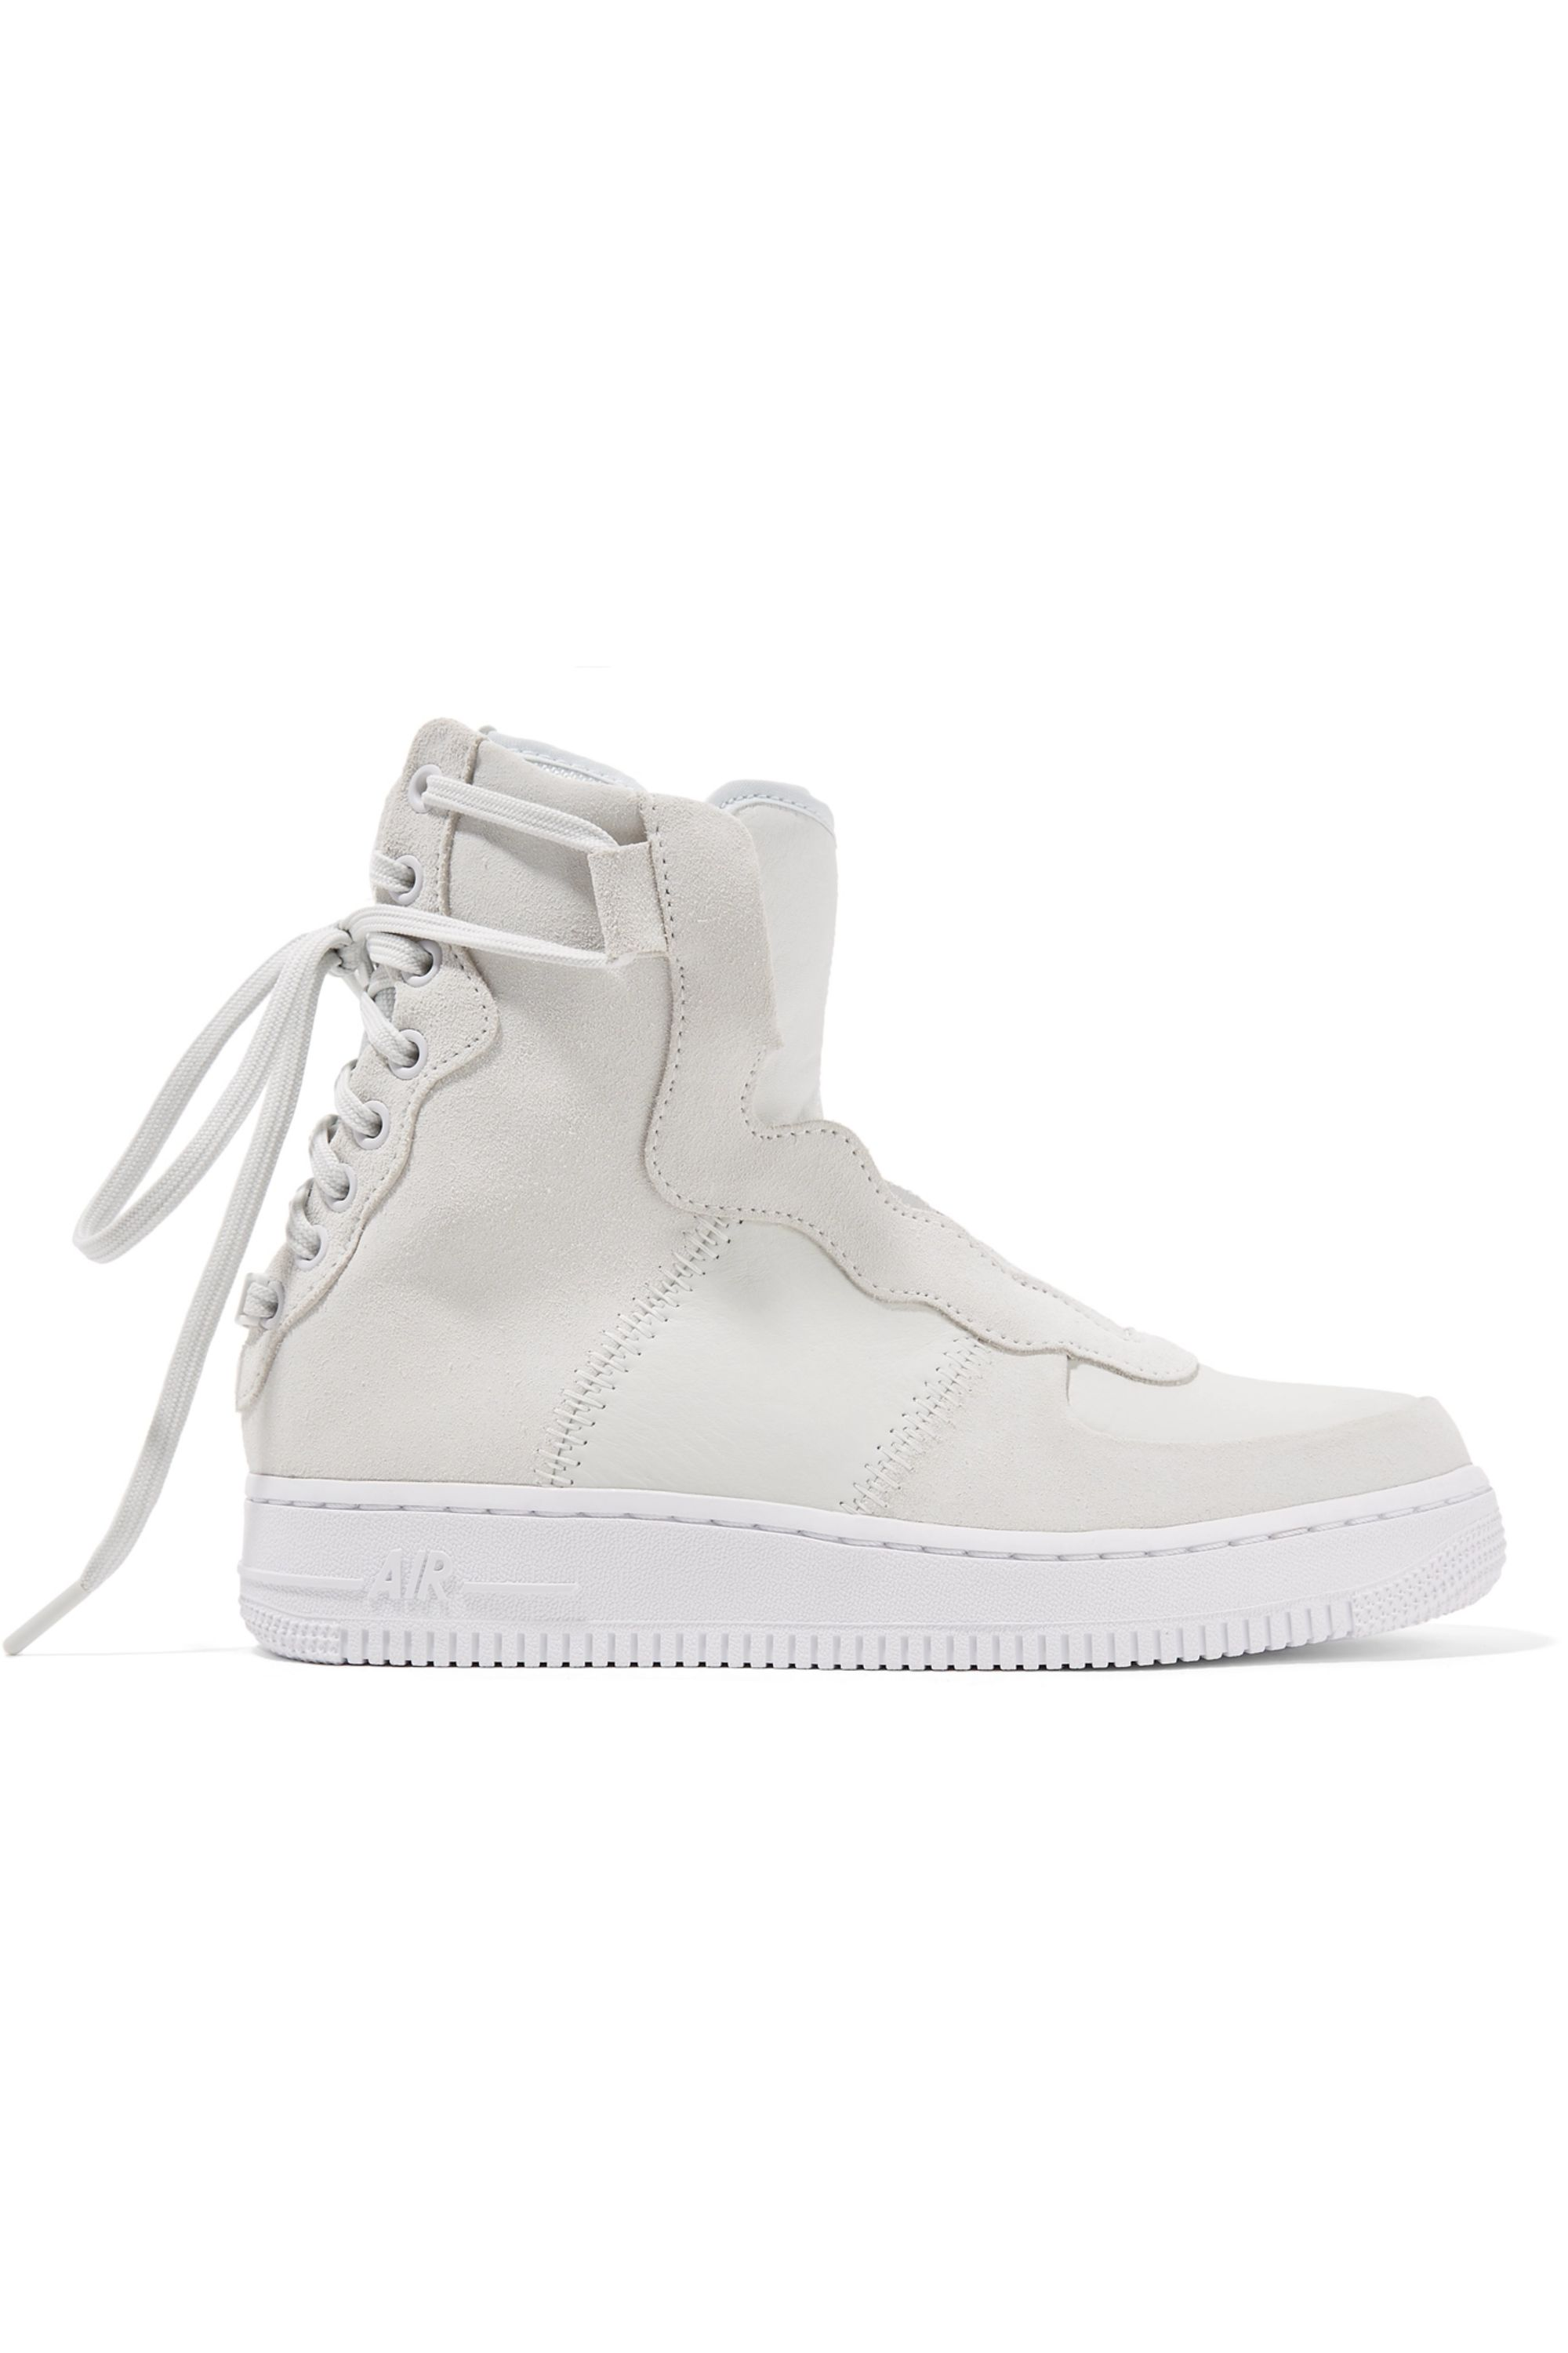 Nike The 1 Reimagined Air Force 1 Rebel XX suede and leather high-top sneakers